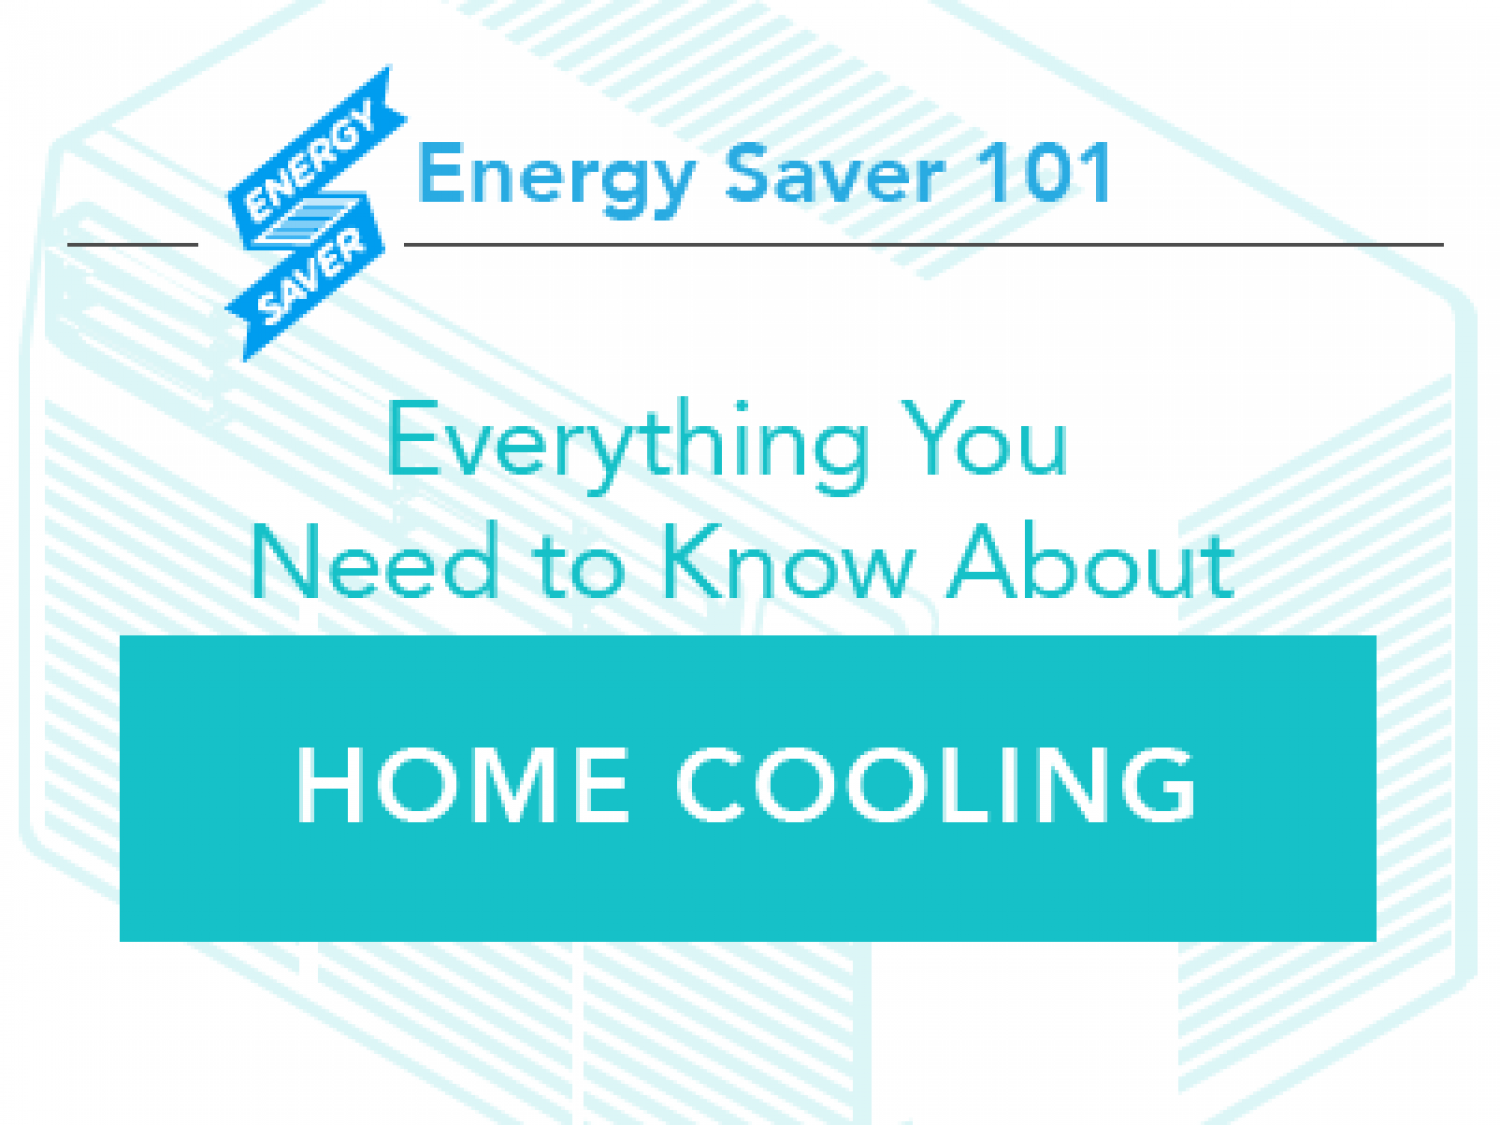 Everything You Need to Know about Home Cooling Infographic